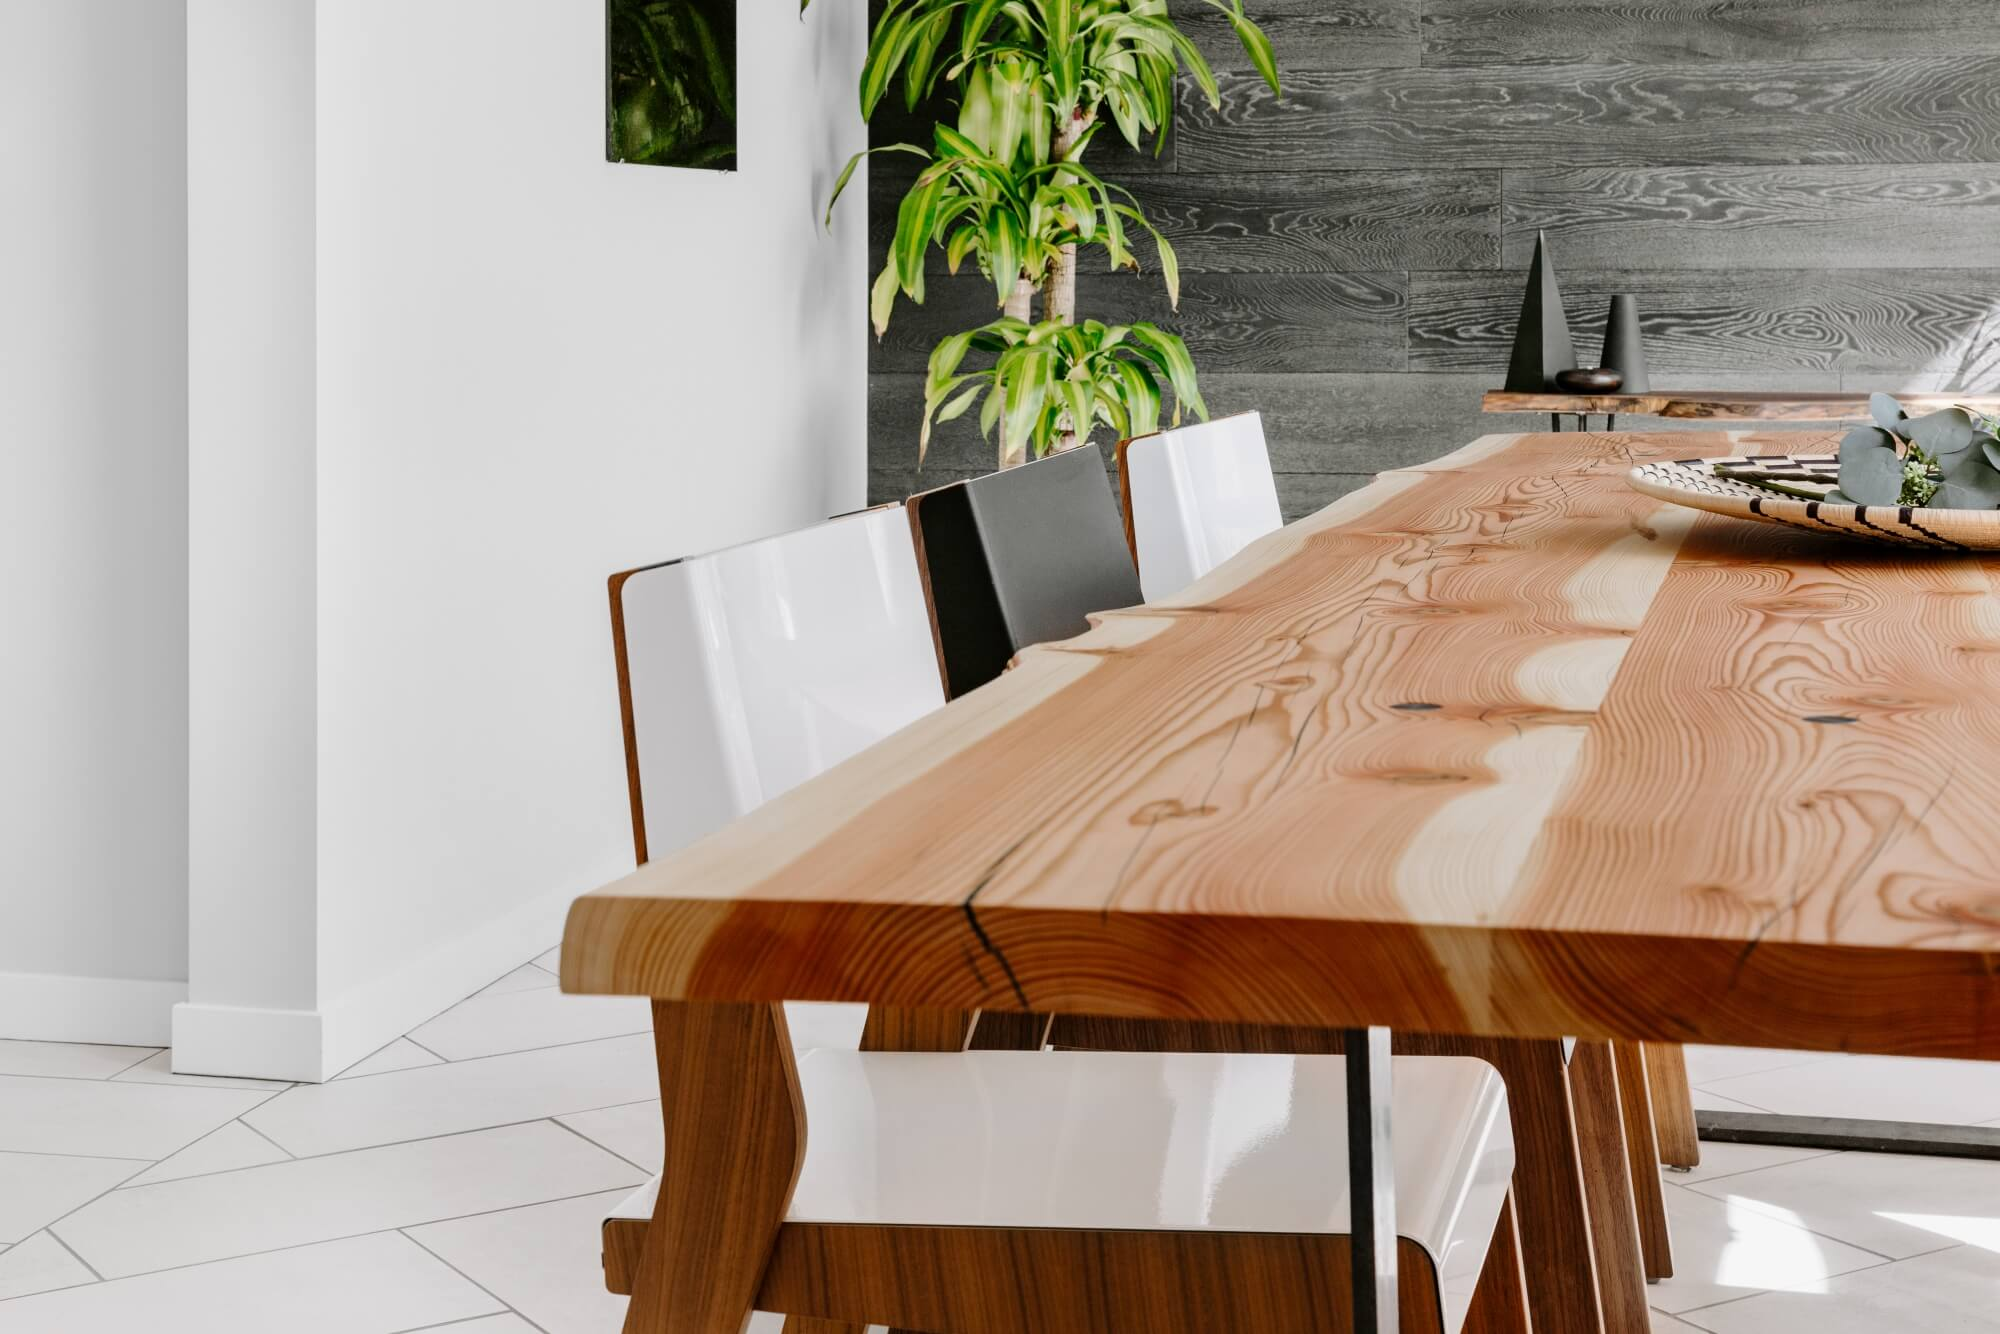 Responsible sourced wood table.